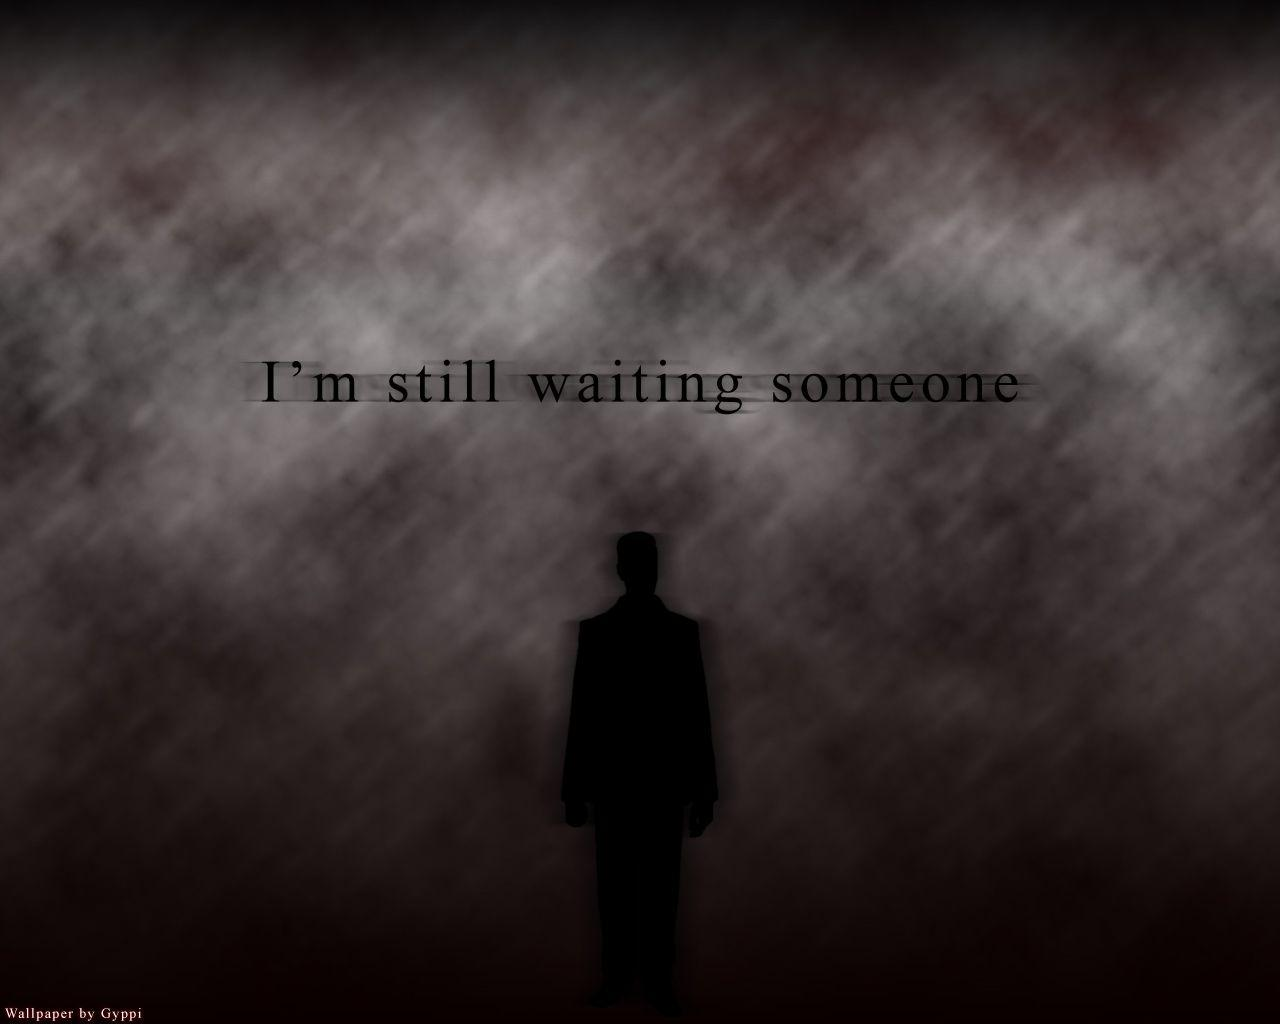 depression images sad wallpaper - photo #12